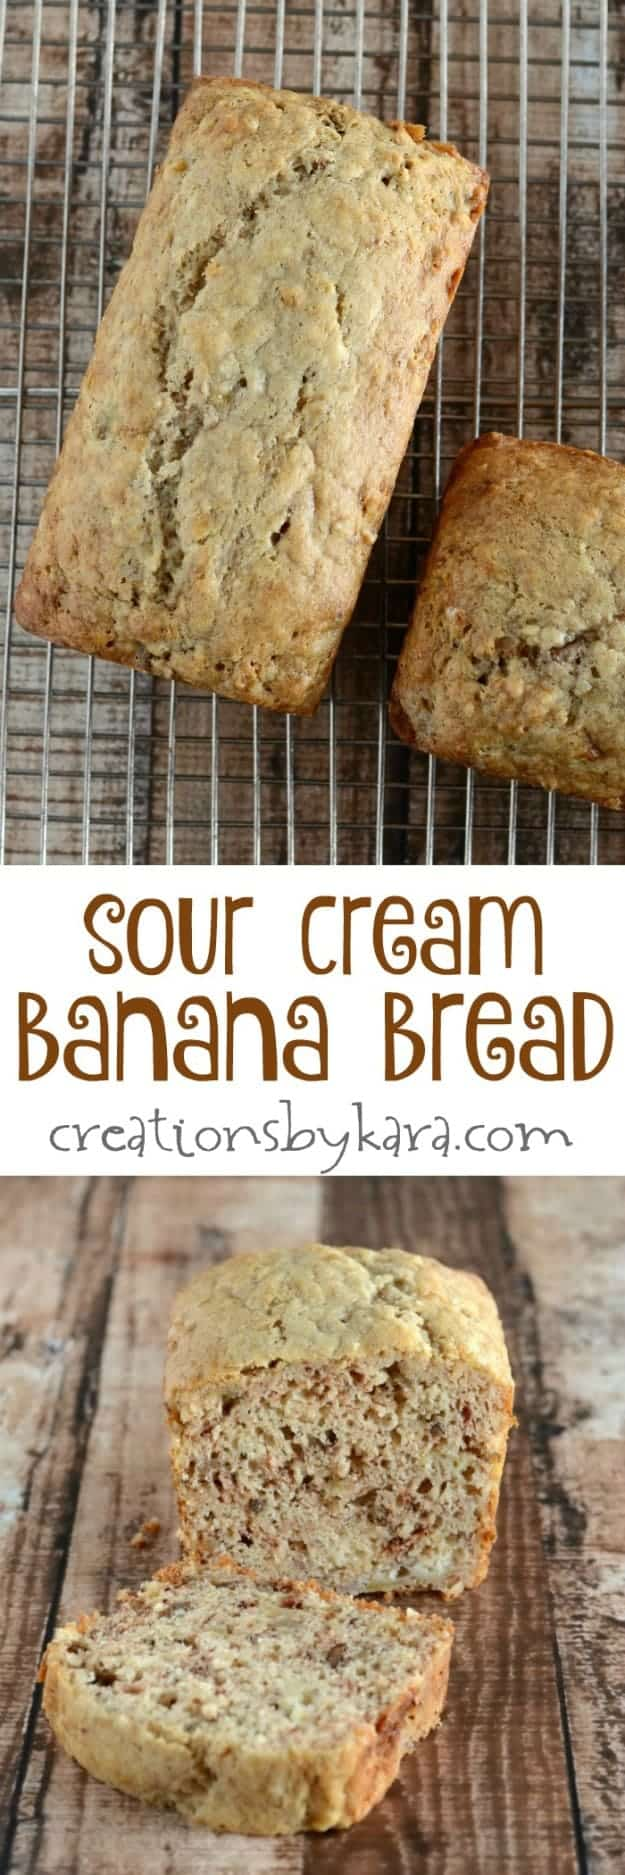 This Sour Cream Banana Bread recipe will blow you away! It is soft and tender, and a secret ingredients adds an amazing flavor! I have also included the instructions for making banana muffins.